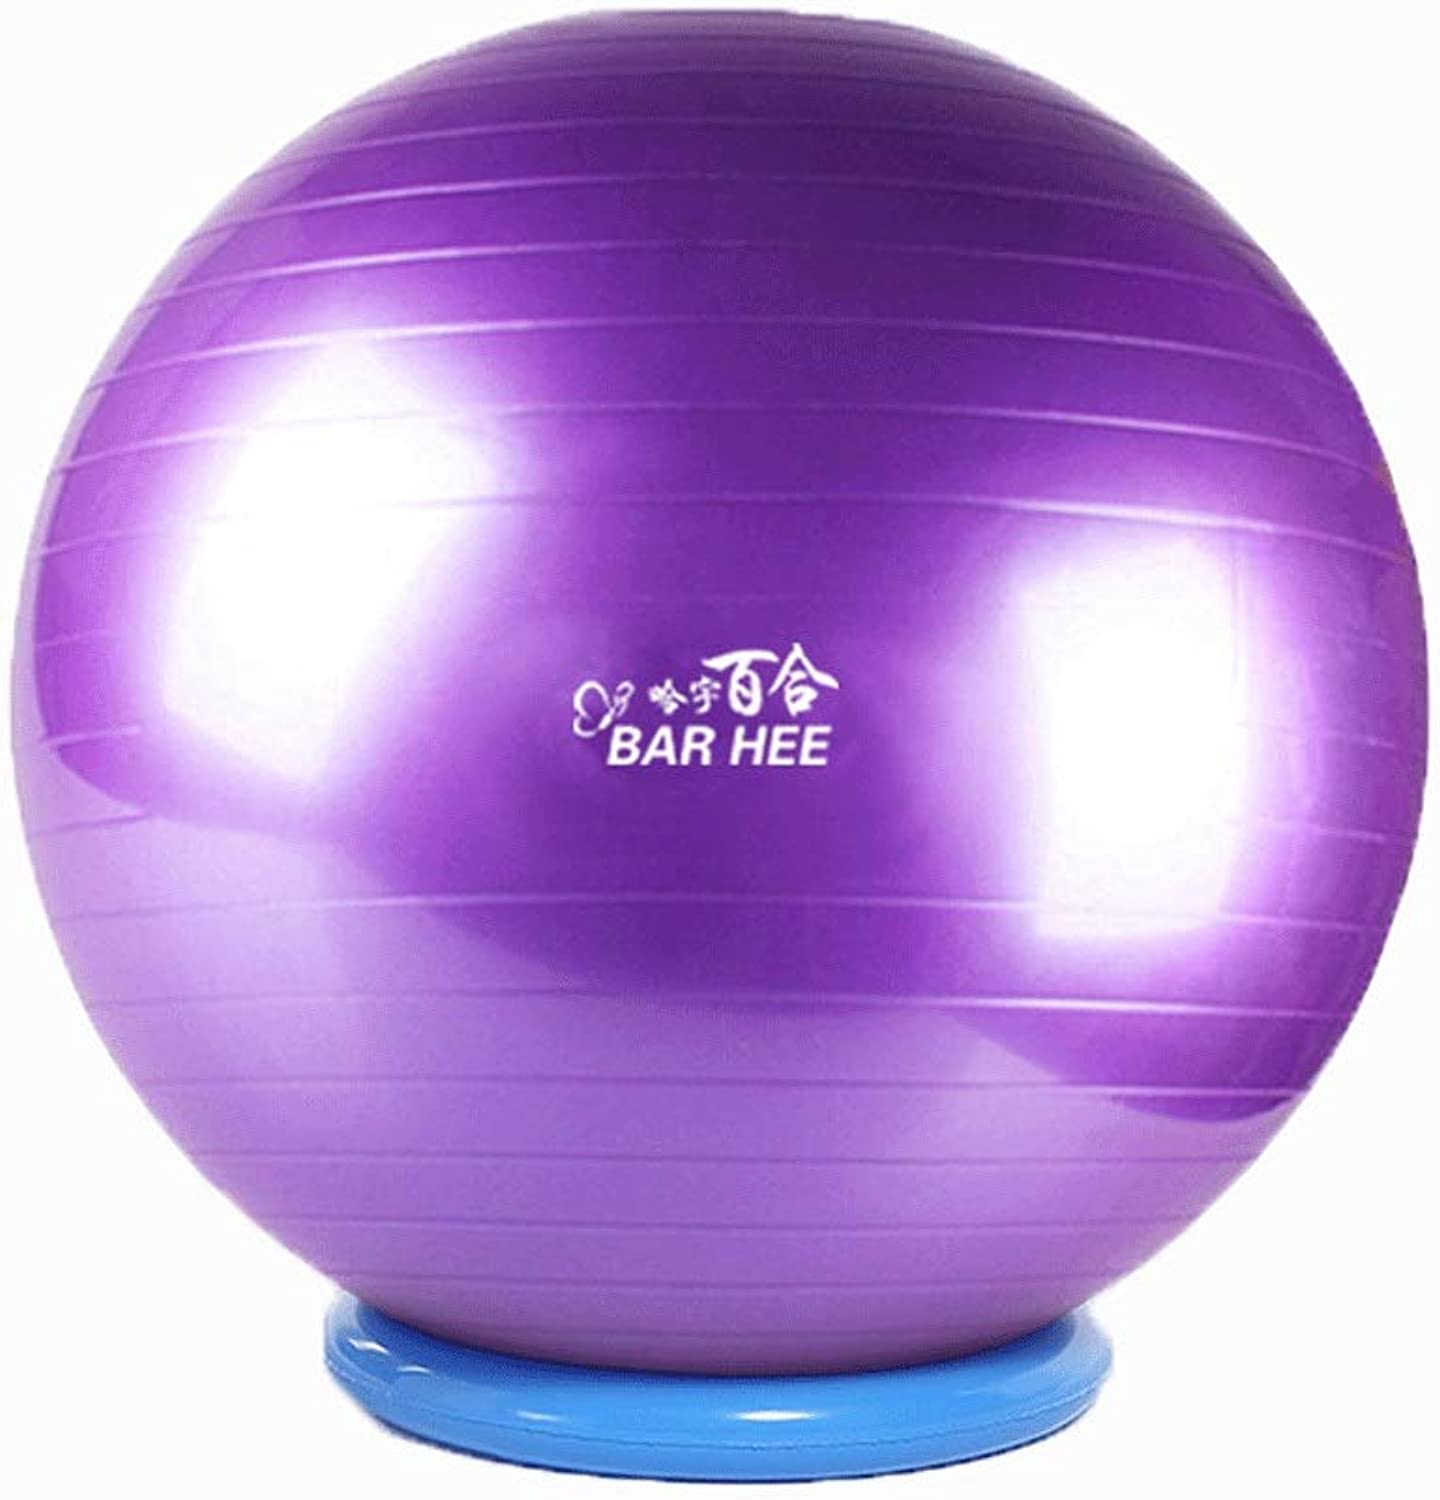 Yoga Ball with retaining Ring Gym Ball Thick ExplosionProof Environmentally Friendly Tasteless Gymnastic Ball Baby Sense Training (color   Purple, Size   55CM)